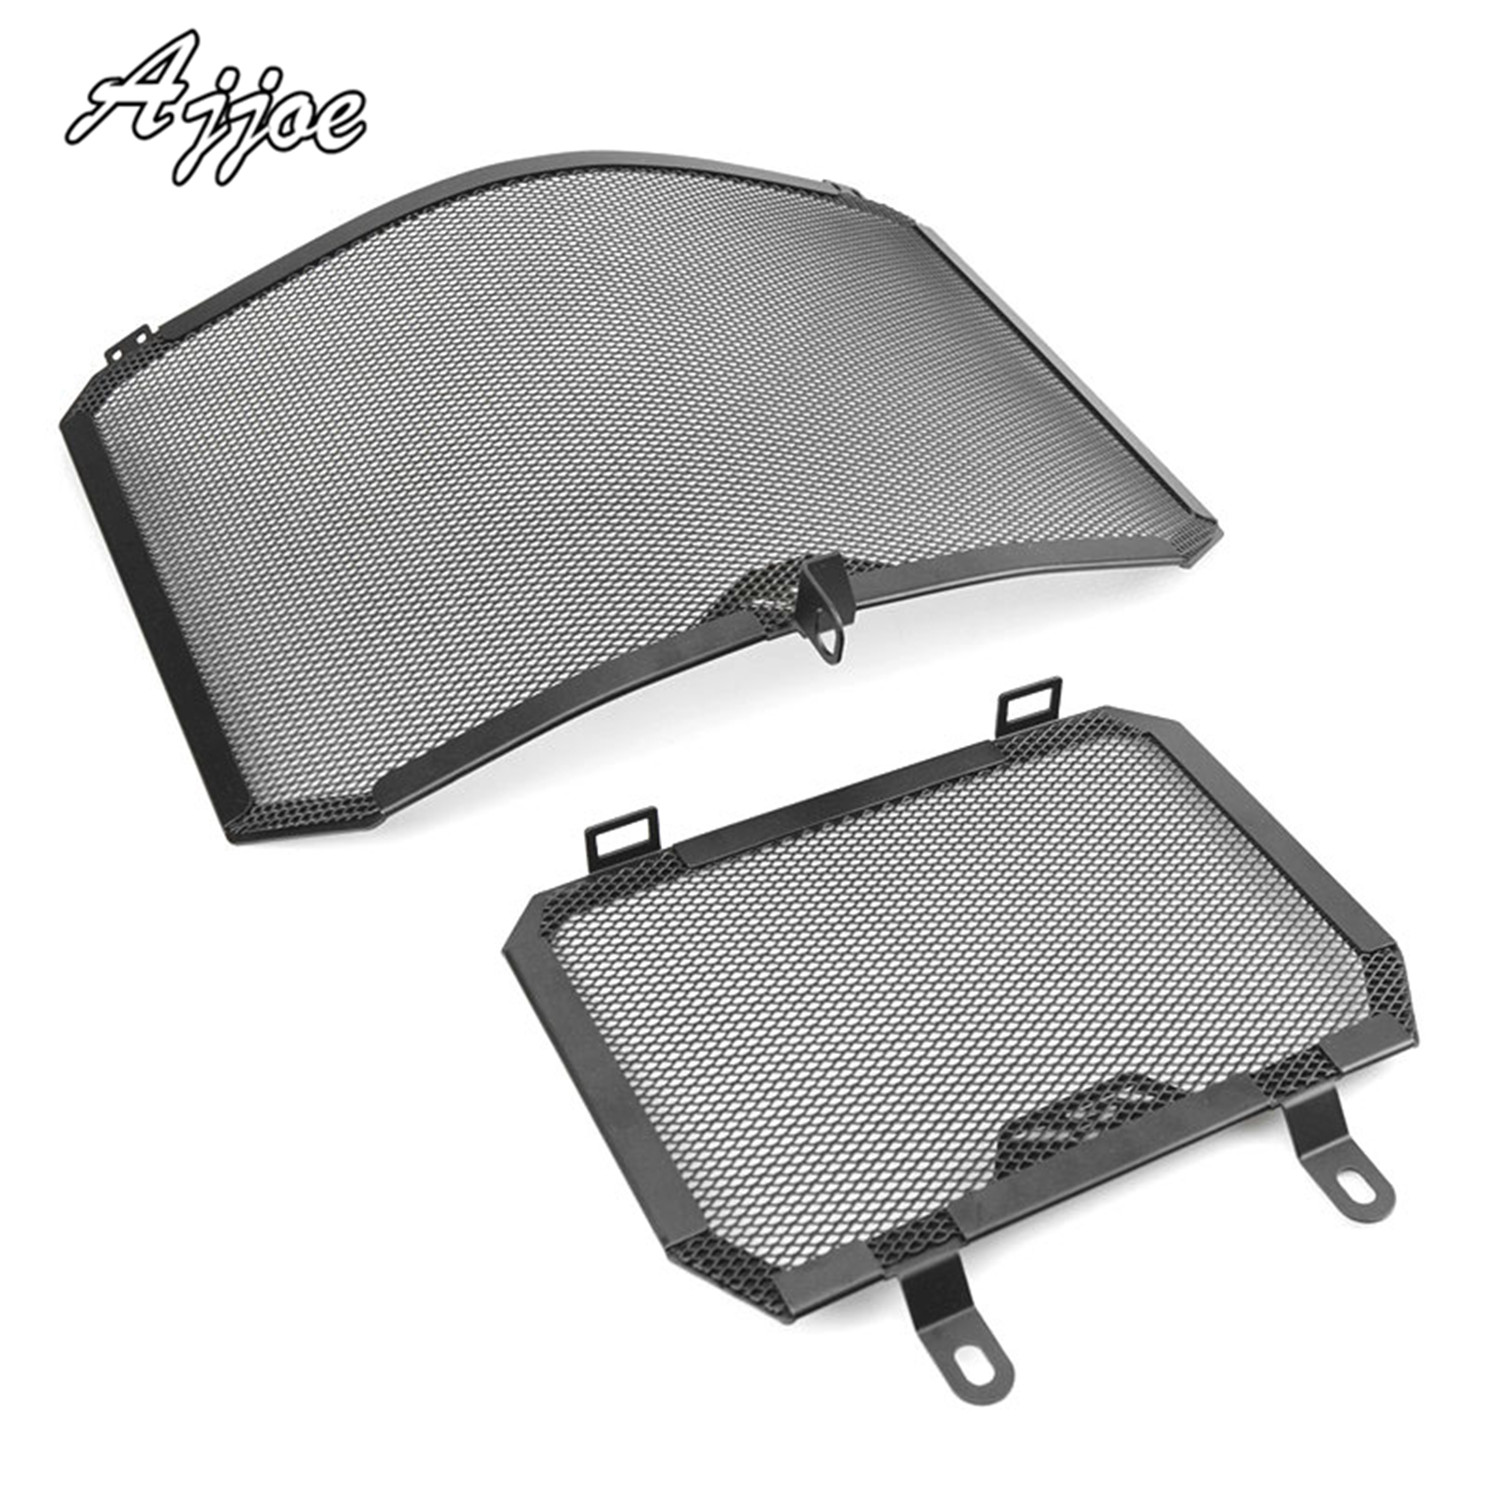 Motorcycle Radiator Grille Guard Protector Cover For Yamaha R1 YZF R1 YZF-R1 2015-2018 YZF R1M 2015-2018 R1M